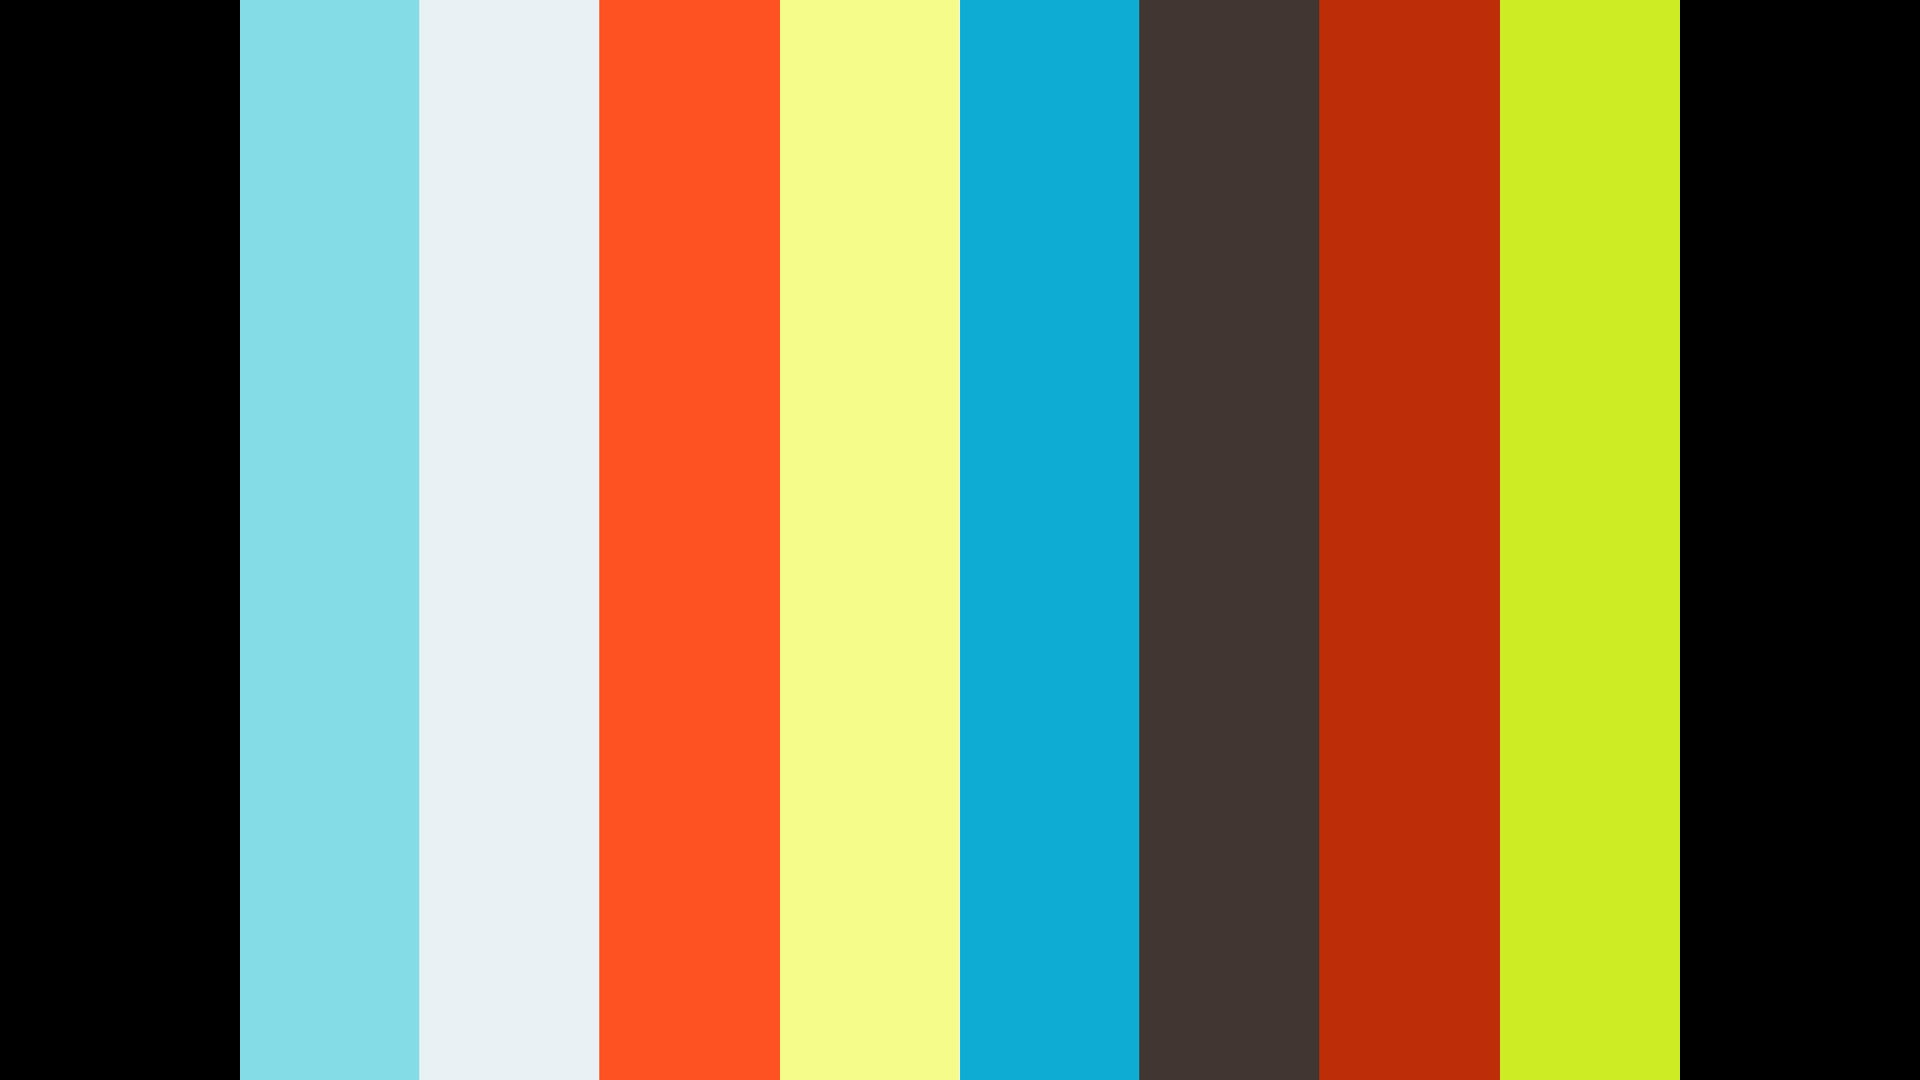 Market News #83. GE's divestments. Continental's JV with Michelin. Disney's tie-up with Microsoft.